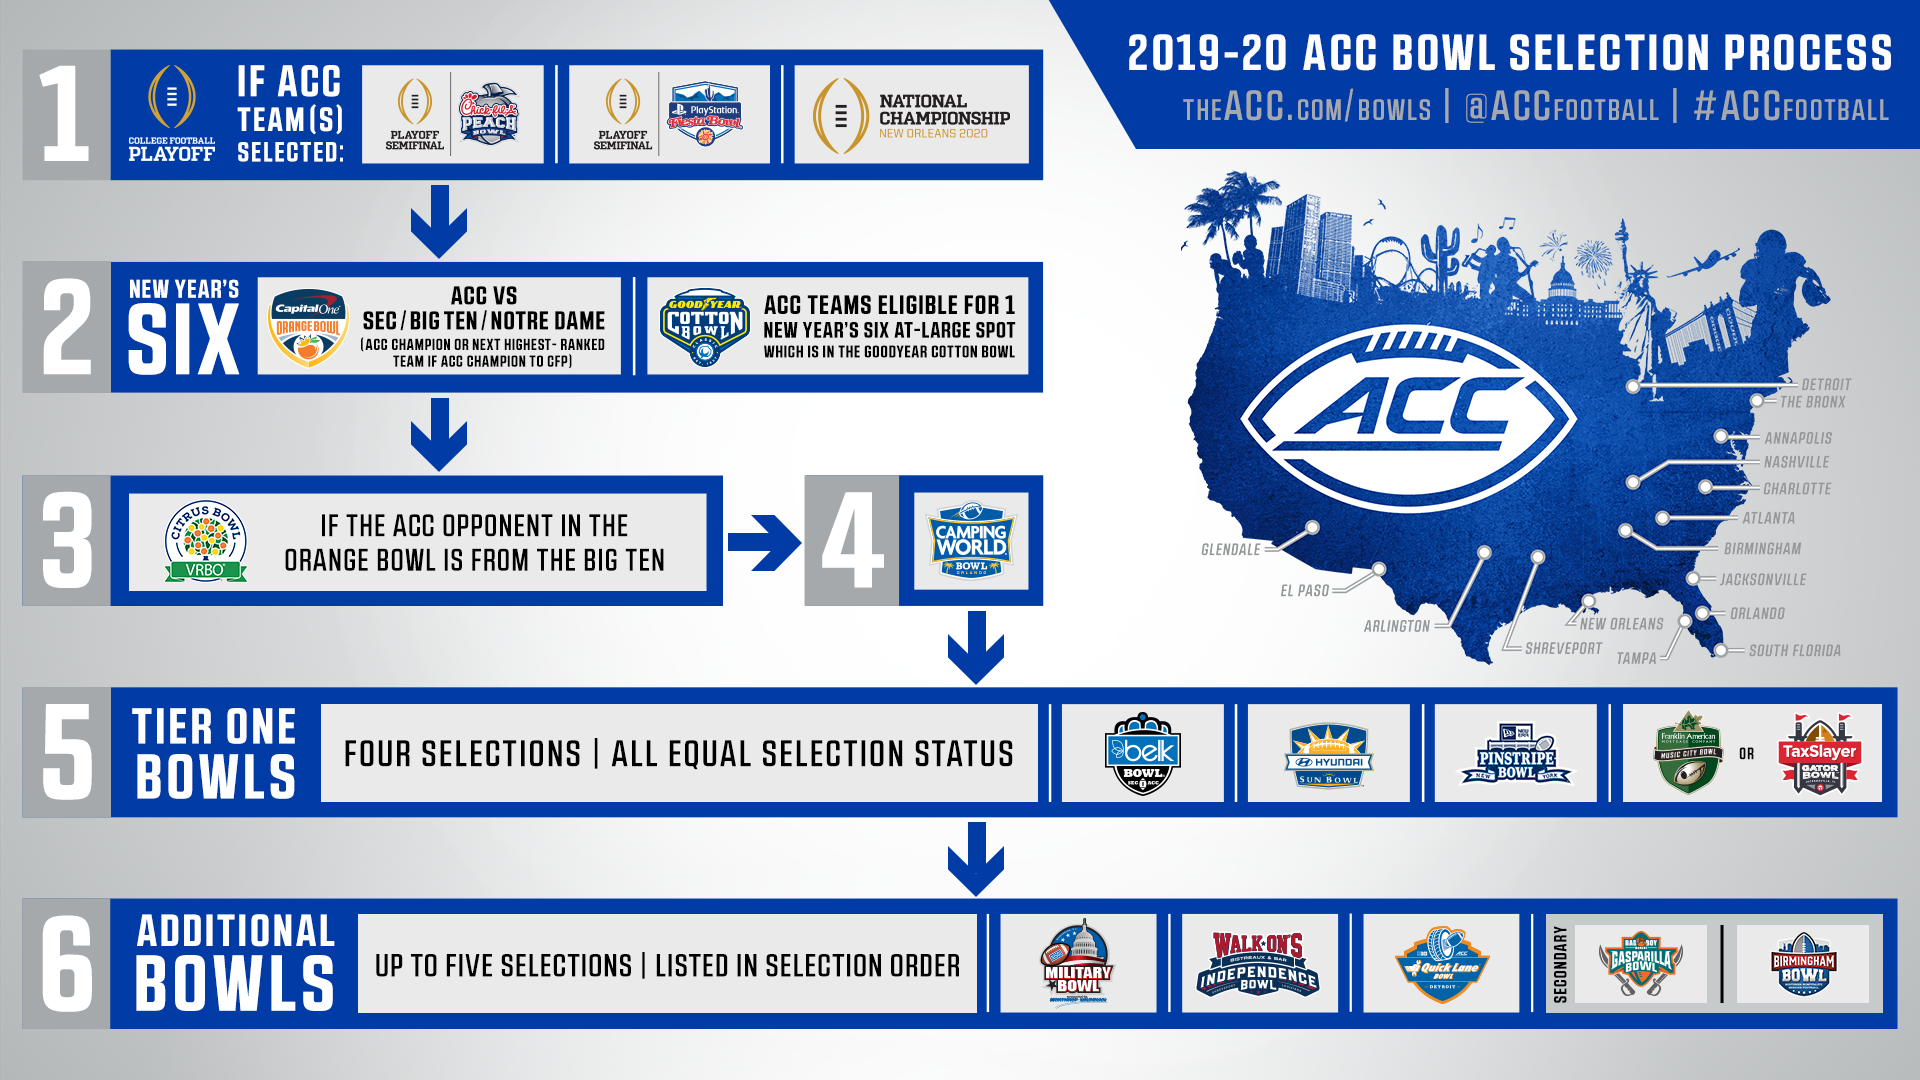 When Are Bowl Games Announced 2020.Espn Announces Acc Bowl Game Times And Networks Atlantic